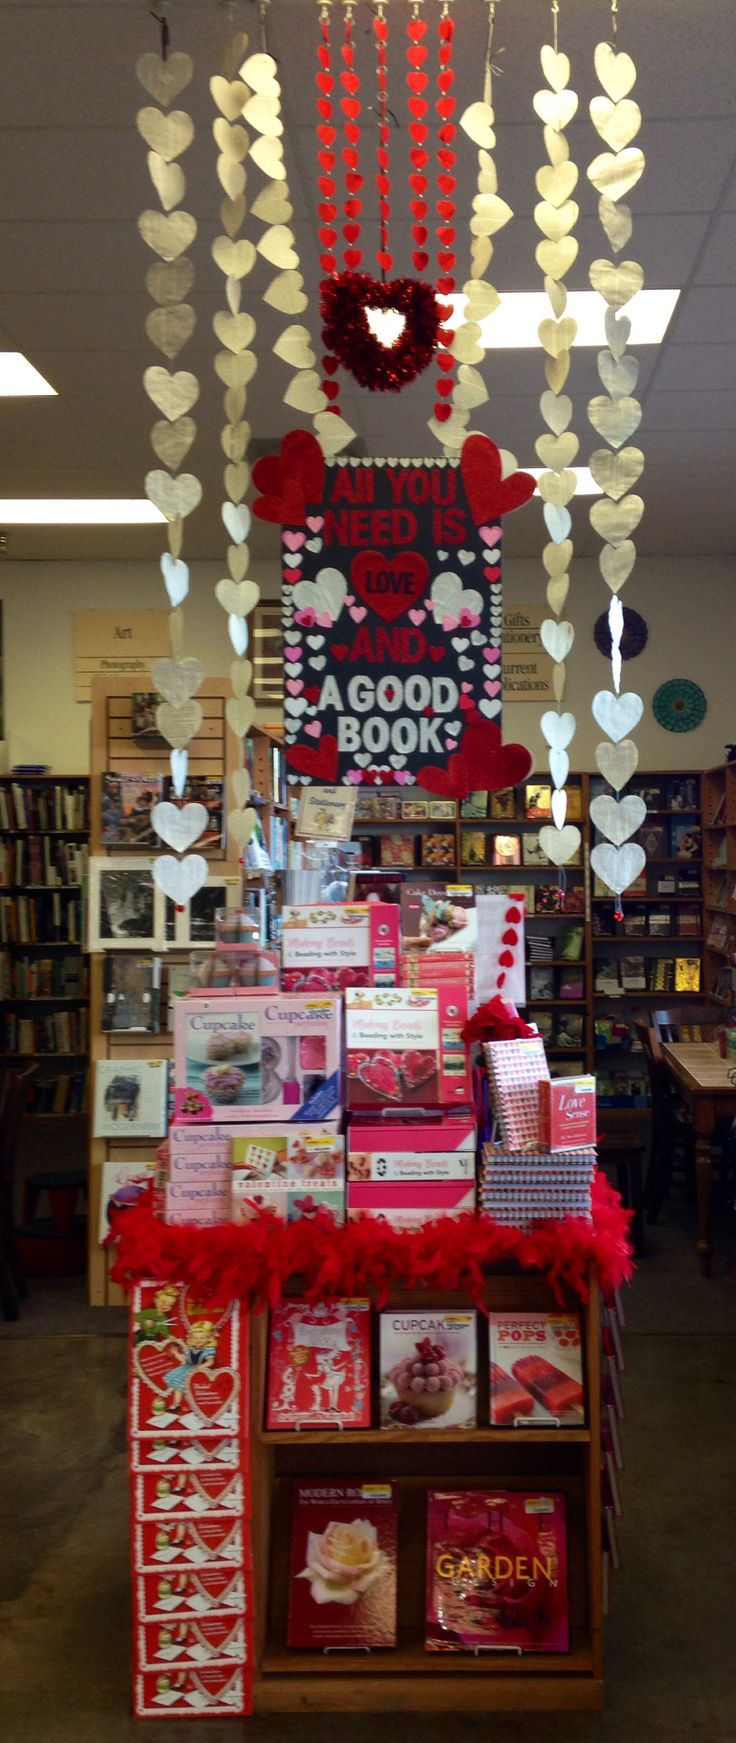 17 Best ideas about Library Book Displays on Pinterest